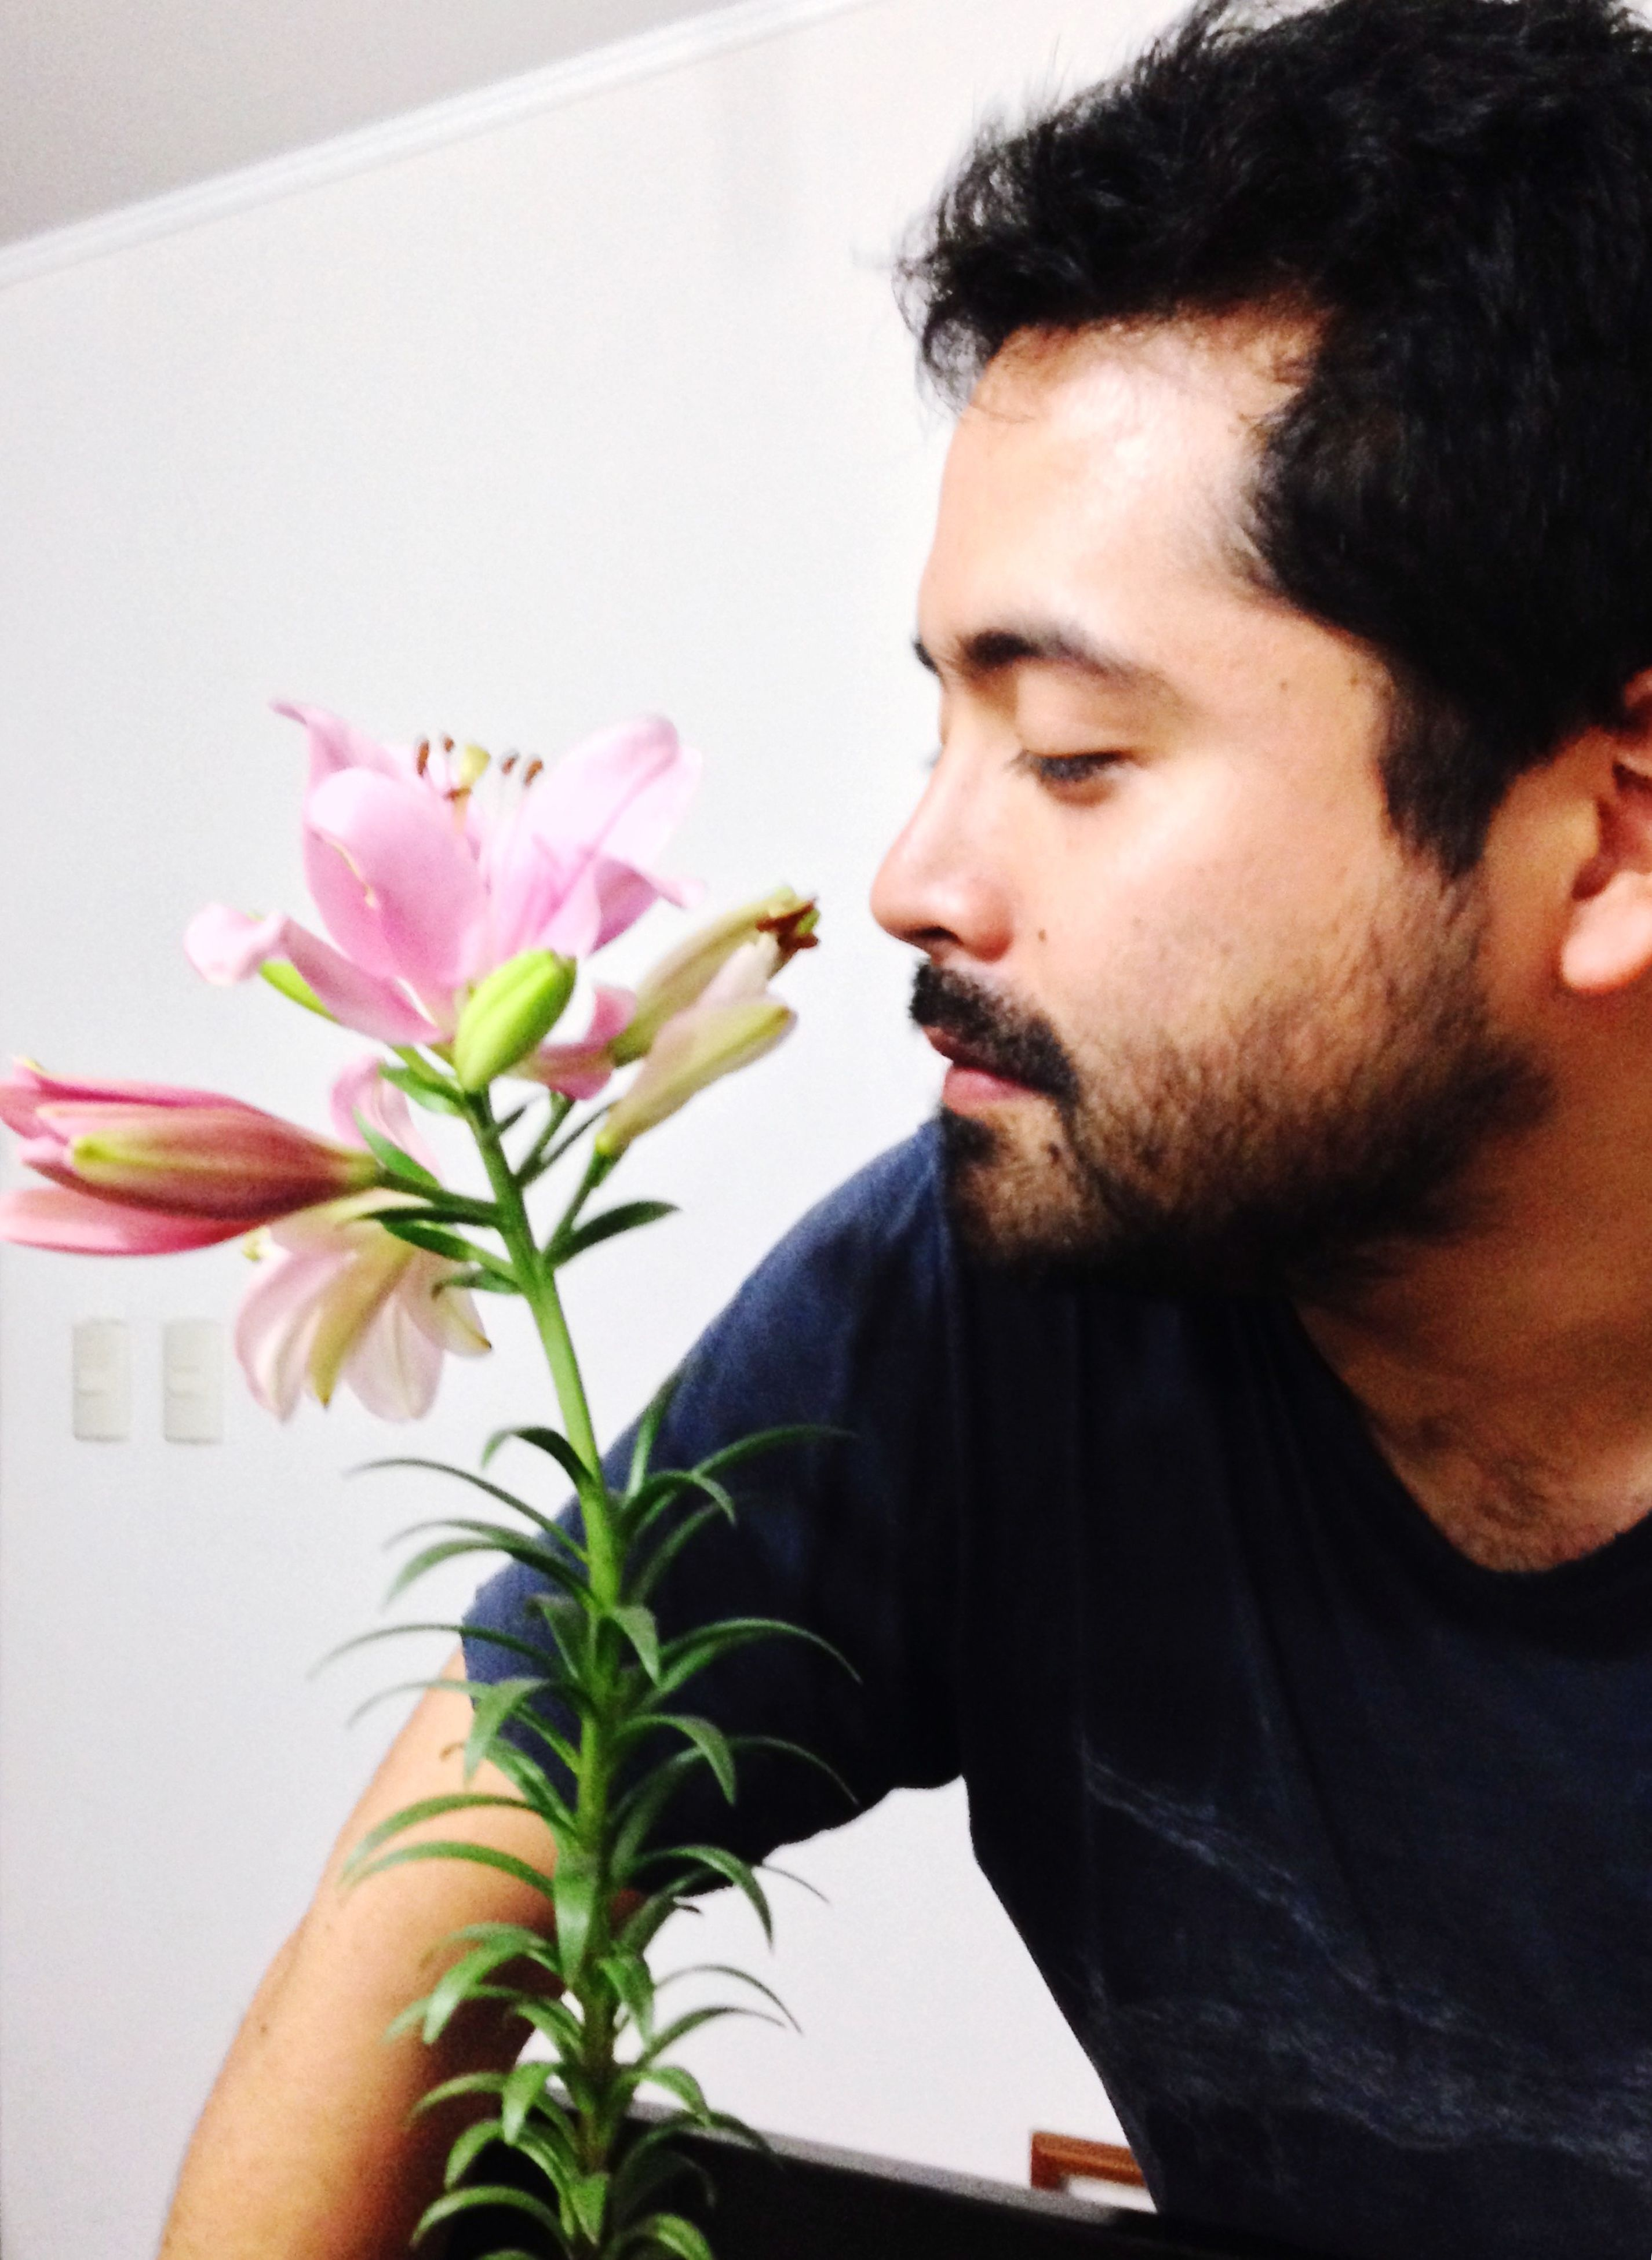 flower, plant, contemplation, lifestyles, one person, young adult, beard, indoors, nature, close-up, real people, men, day, fragility, freshness, adults only, adult, people